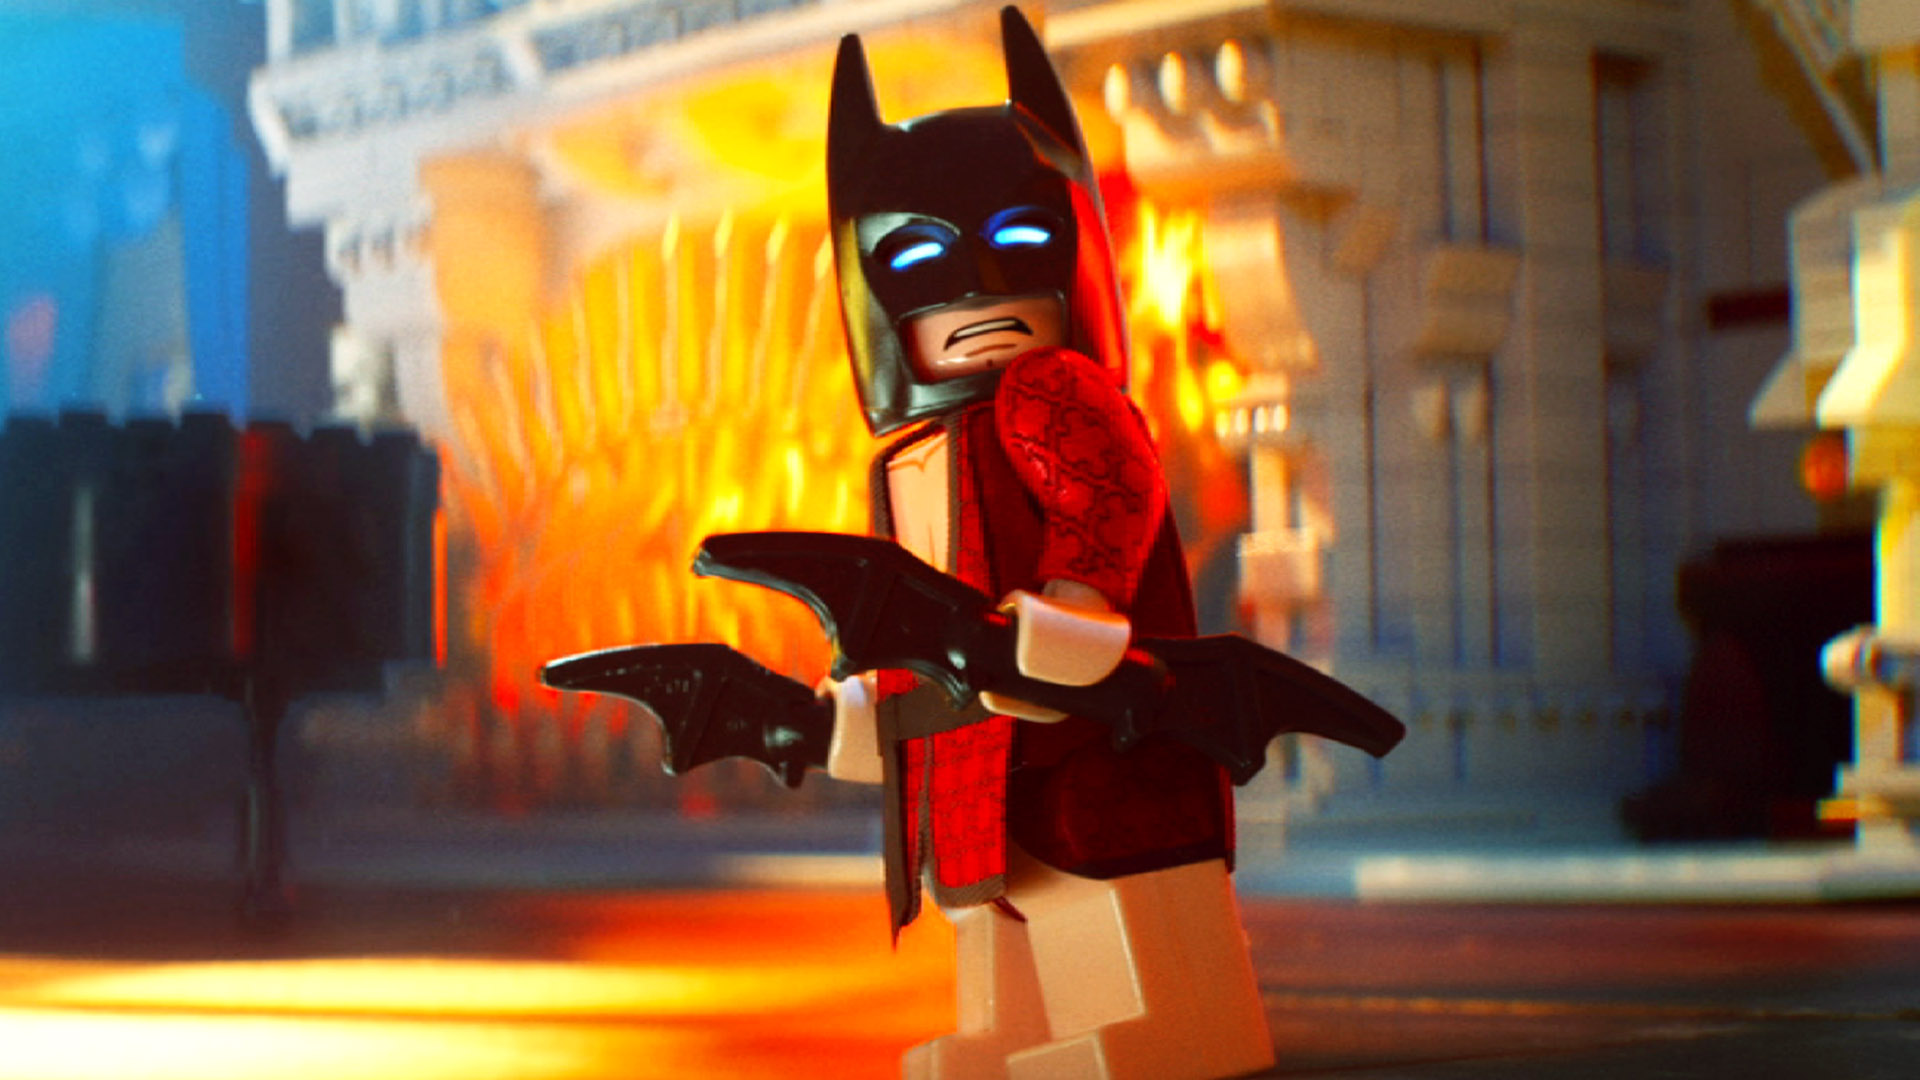 Lego Batman Movie 2017 Wallpapers High Quality | Download Free